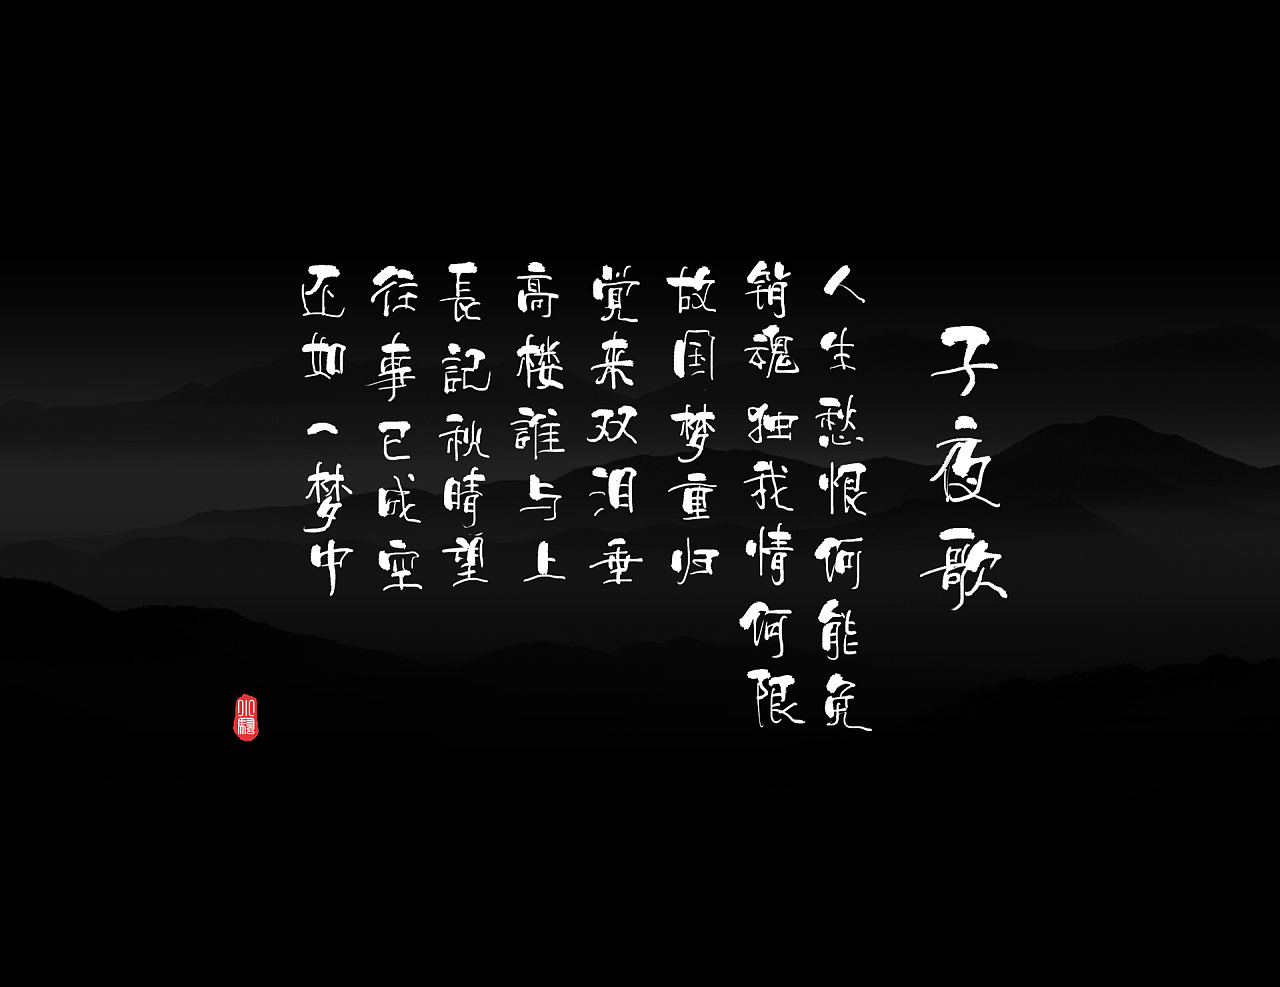 chinesefontdesign.com 2018 02 04 12 38 08 054236 50P Li Sao of Tang Song style Chinese Design Inspiration